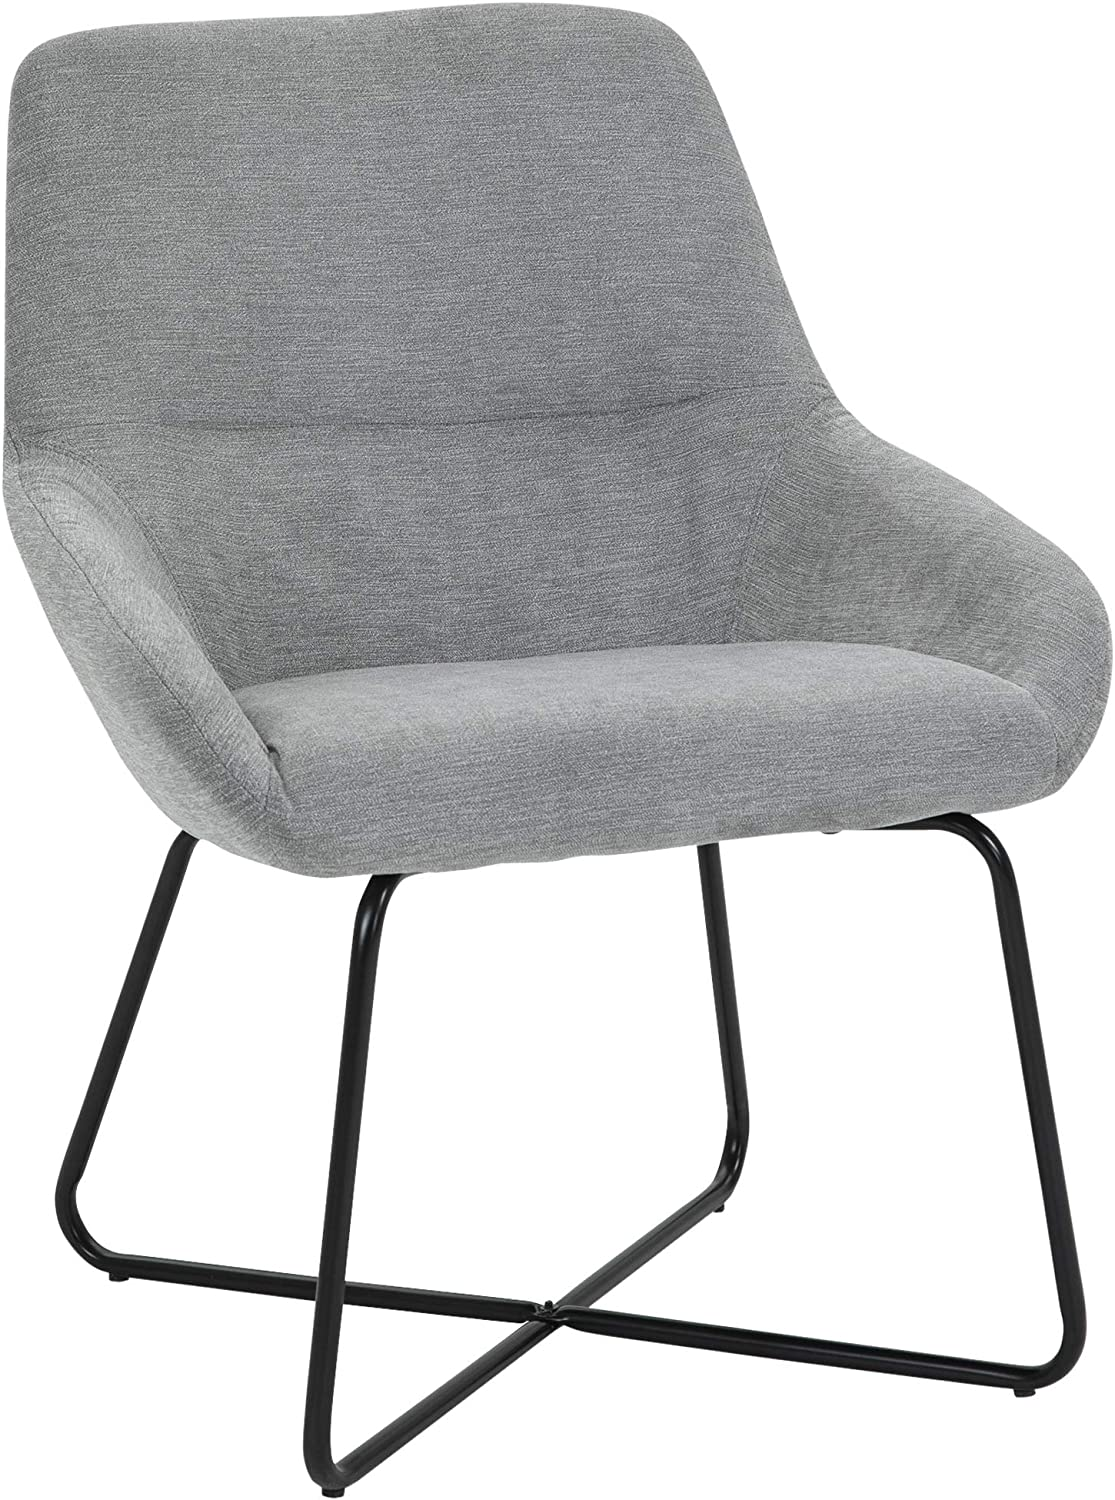 HOMCOM Modern Accent Chair Leisure Fabric Mid Back Chair Livingroom Funiture with X-Shaped Metal Frame and Curved Back, Grey/Black